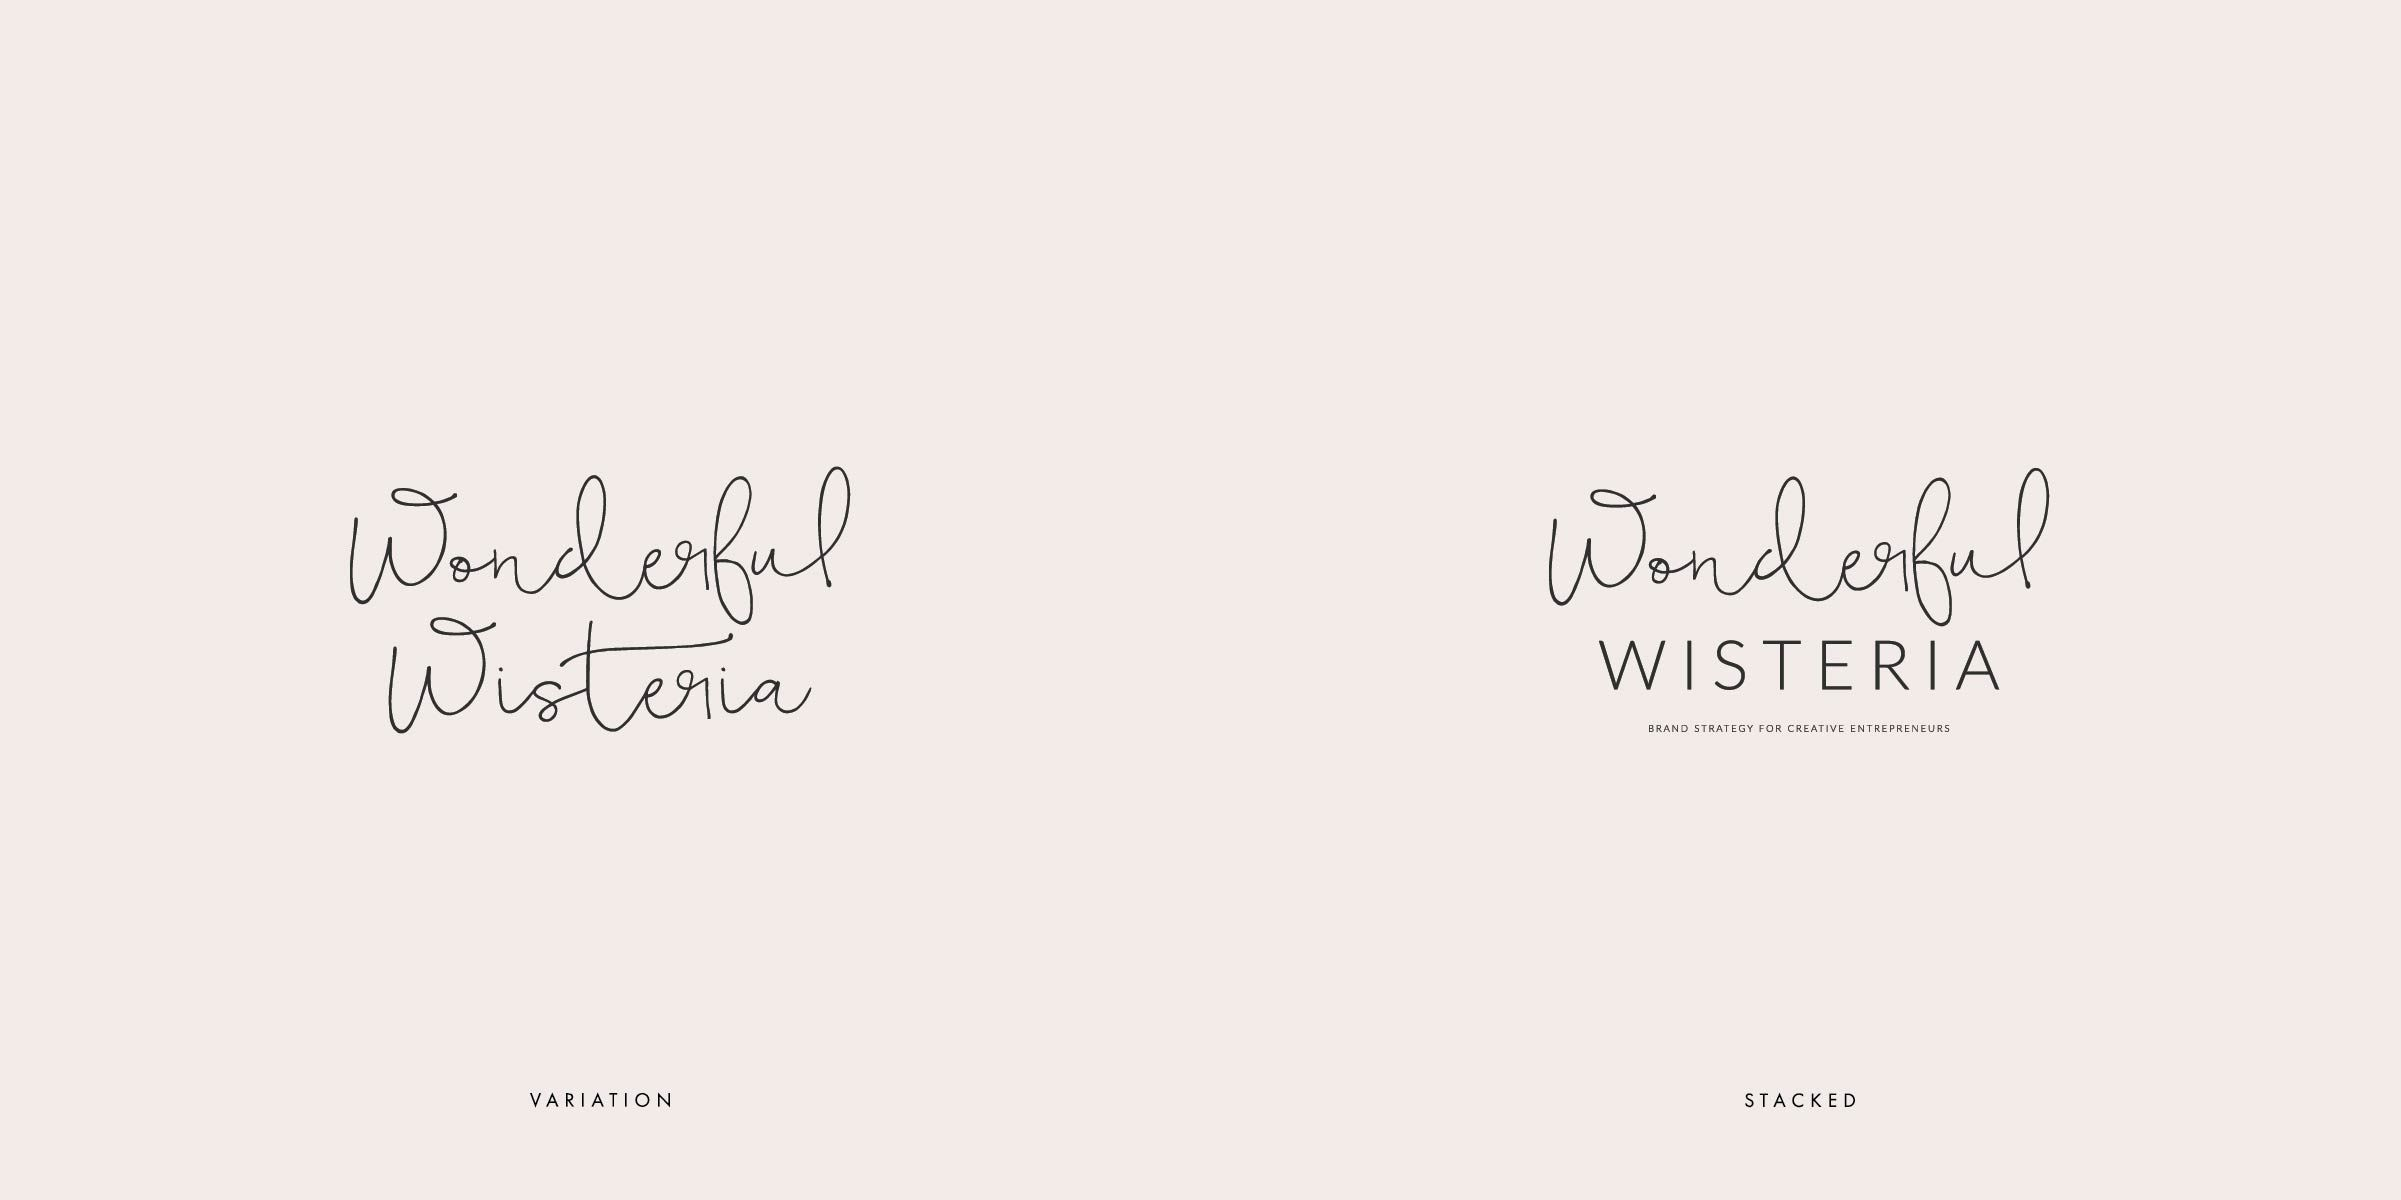 Wonderful Wisteria Blog Logo Identity Package, wordpress theme, mood board inspiration, blog design idea, graphic design, branding, style blog, fashion, food blog design, food blog logo, style blog logo